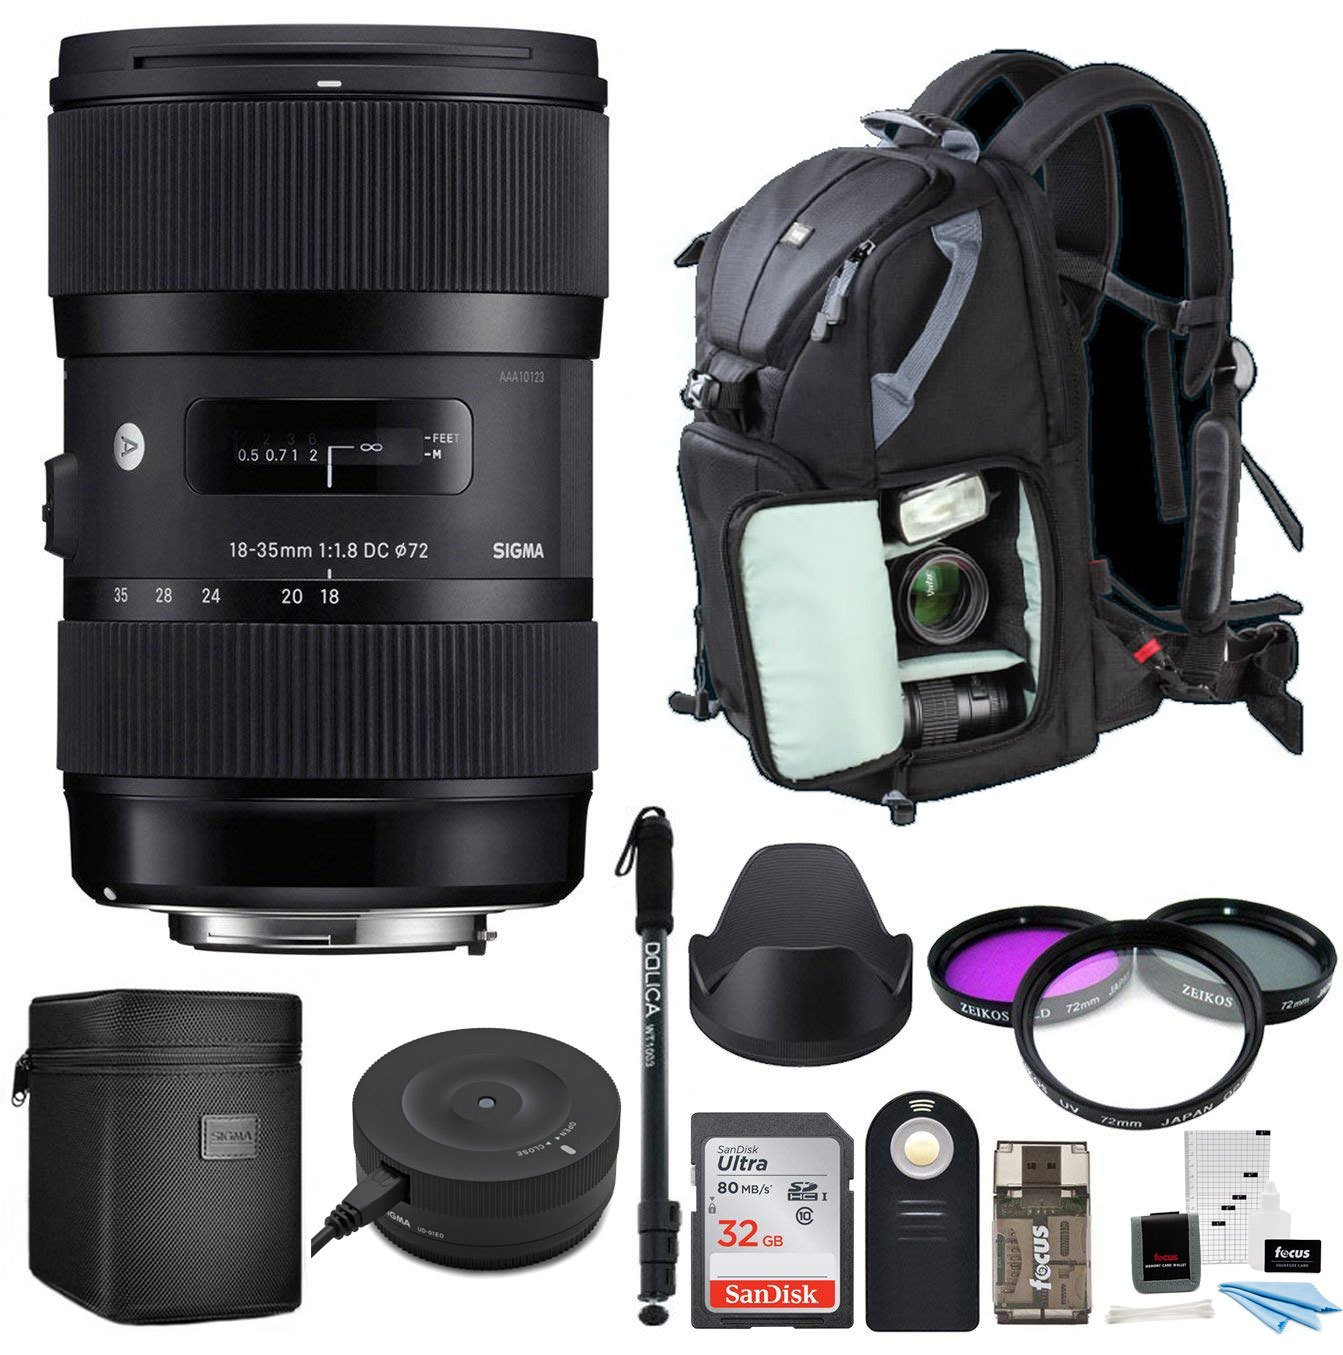 Amazon.com: Sigma 18 – 35 mm F1.8 DC HSM cámaras DSLR de ...